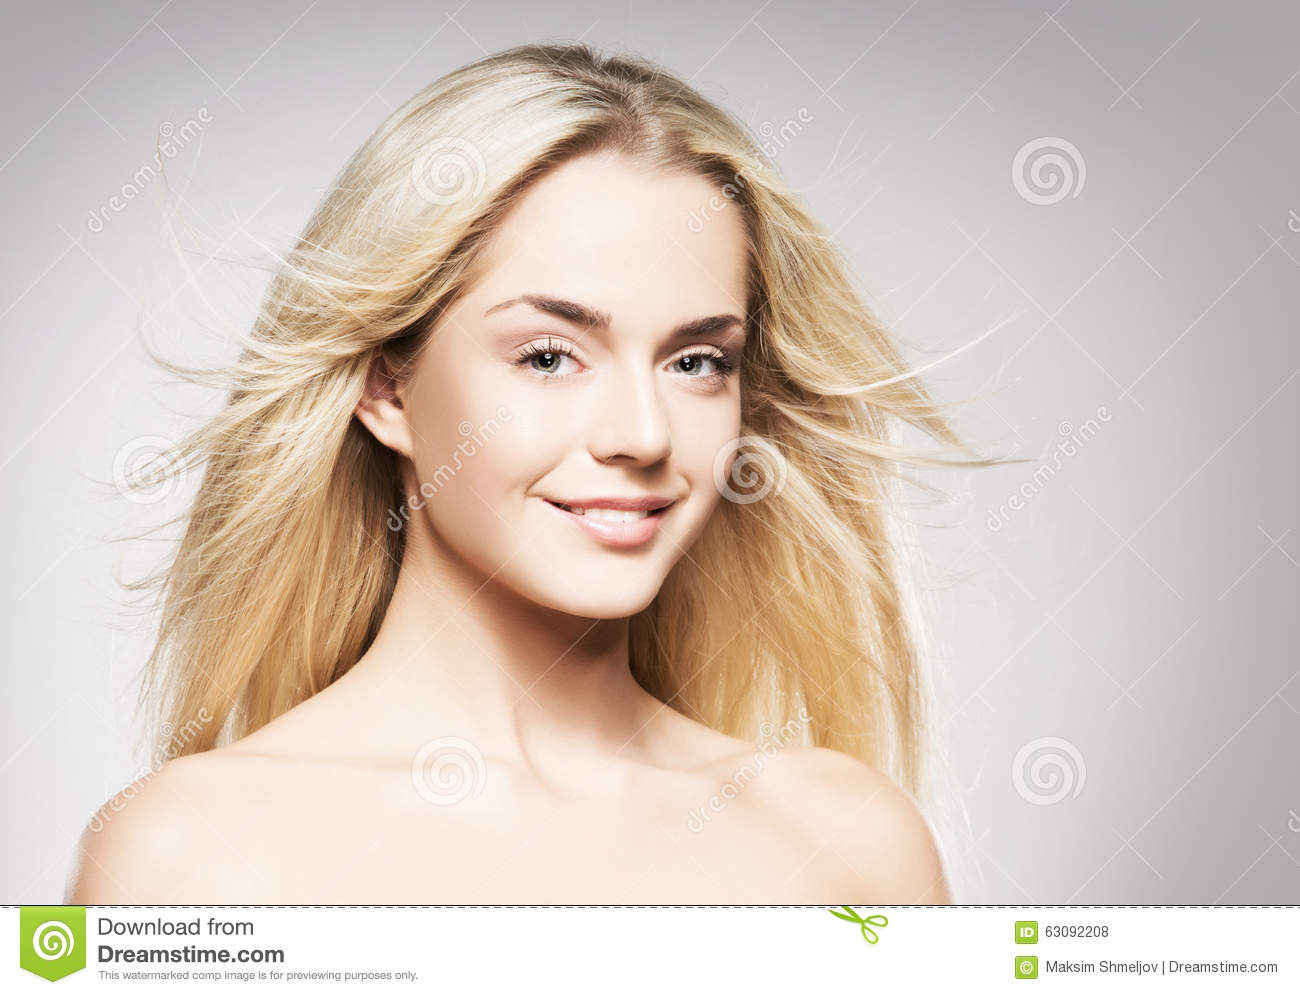 Download Verticale D'une Jeune Femme Blonde Photo stock - Image du coiffure, normal: 63092208